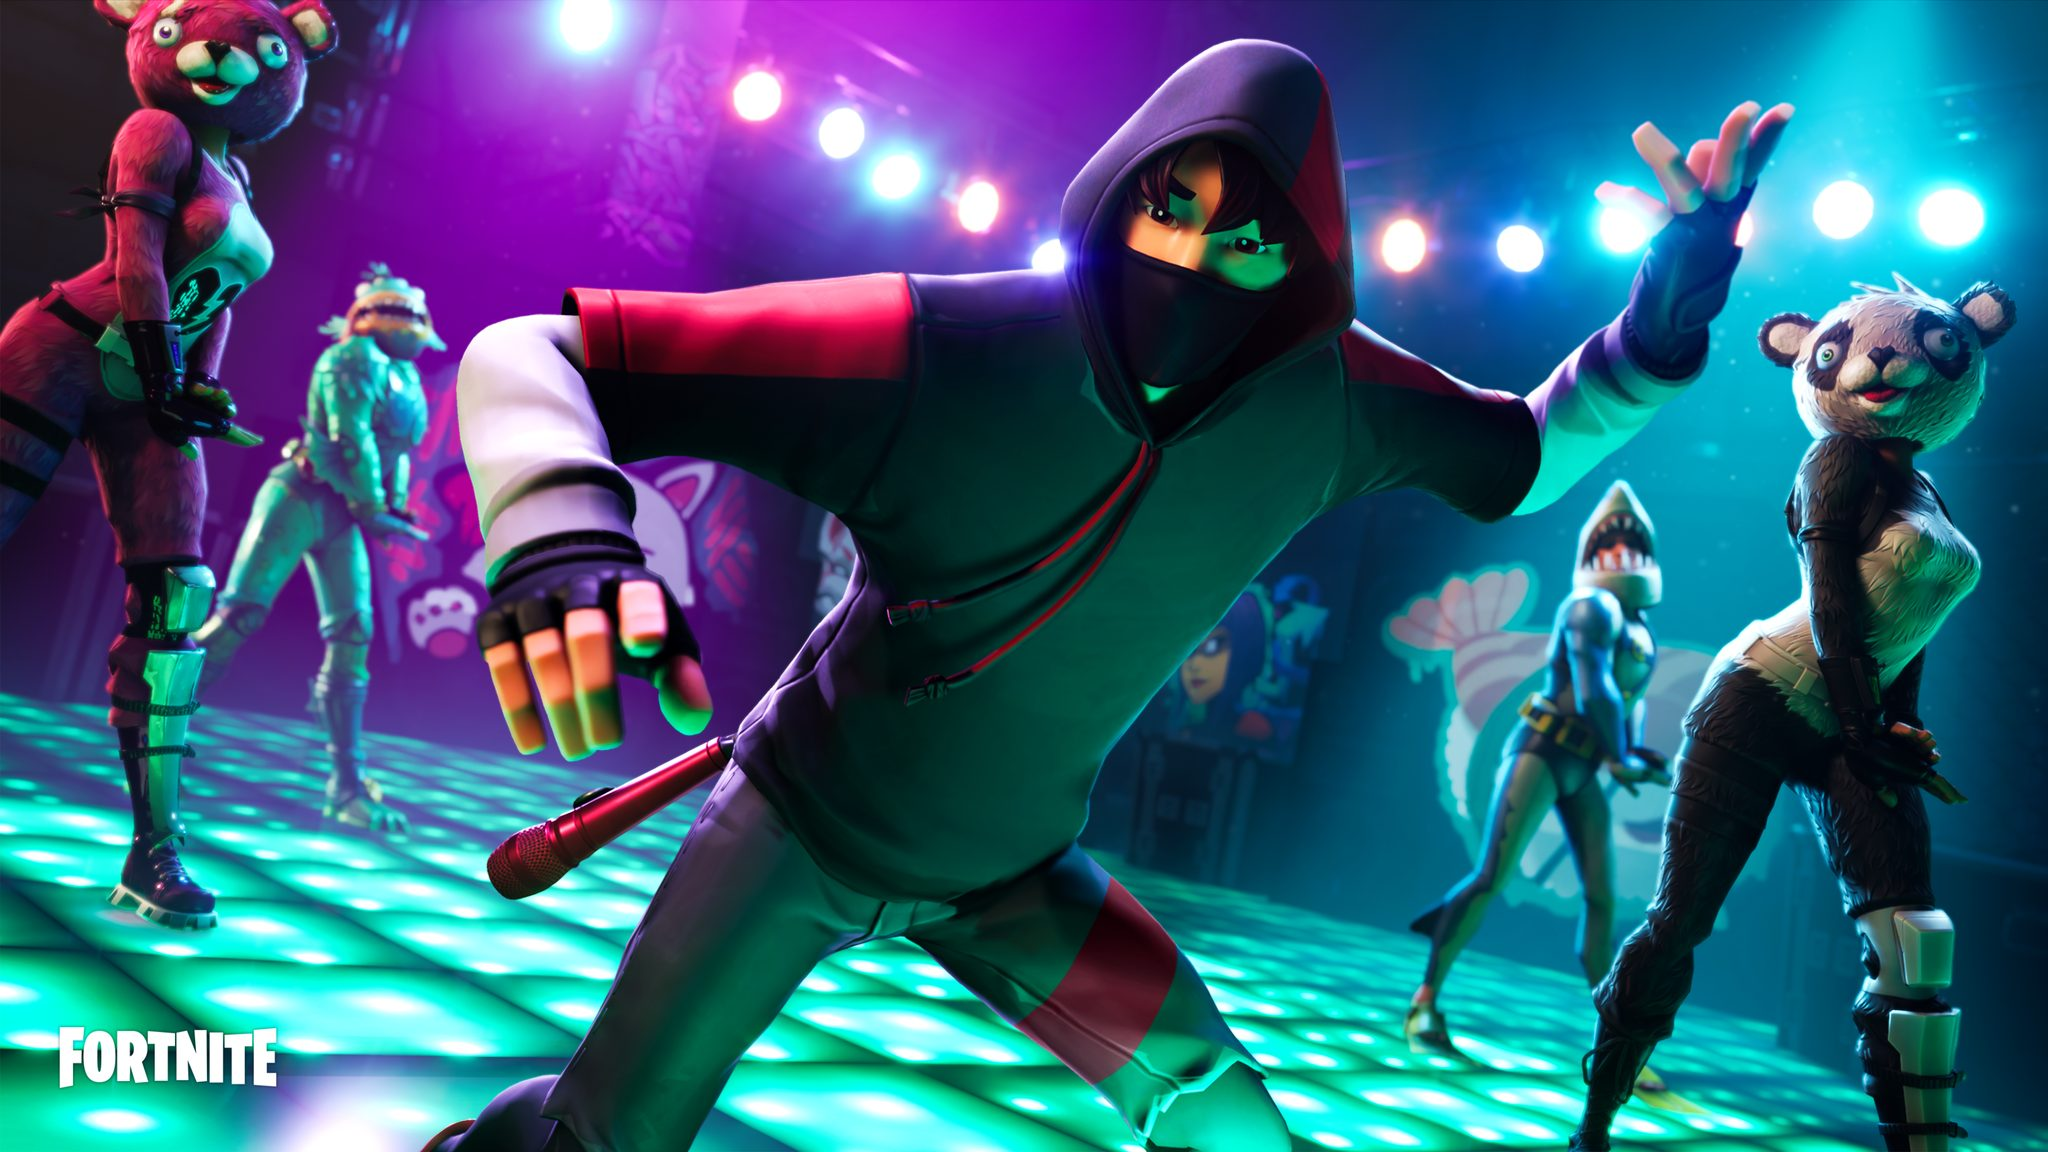 Samsung Brings K Pop To Fortnite With Exclusive Ikonik Outfit For